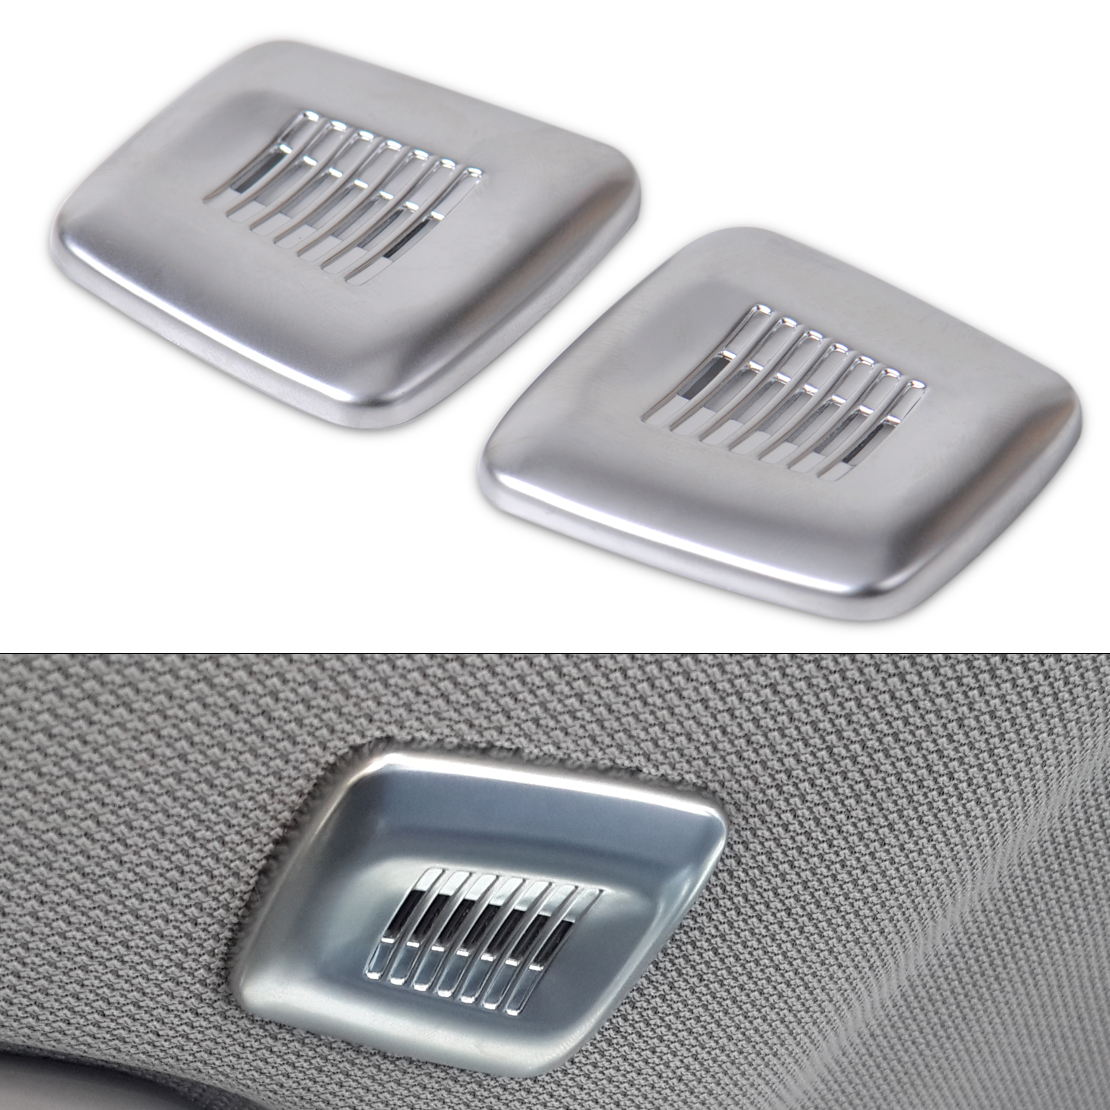 beler New Chrome Interior Roof Dome Microphone Cover Trim For BMW F30 F31 F34 F32 F10 F11 F07 F06 F12 F13 X3 X5 Car Styling цена и фото